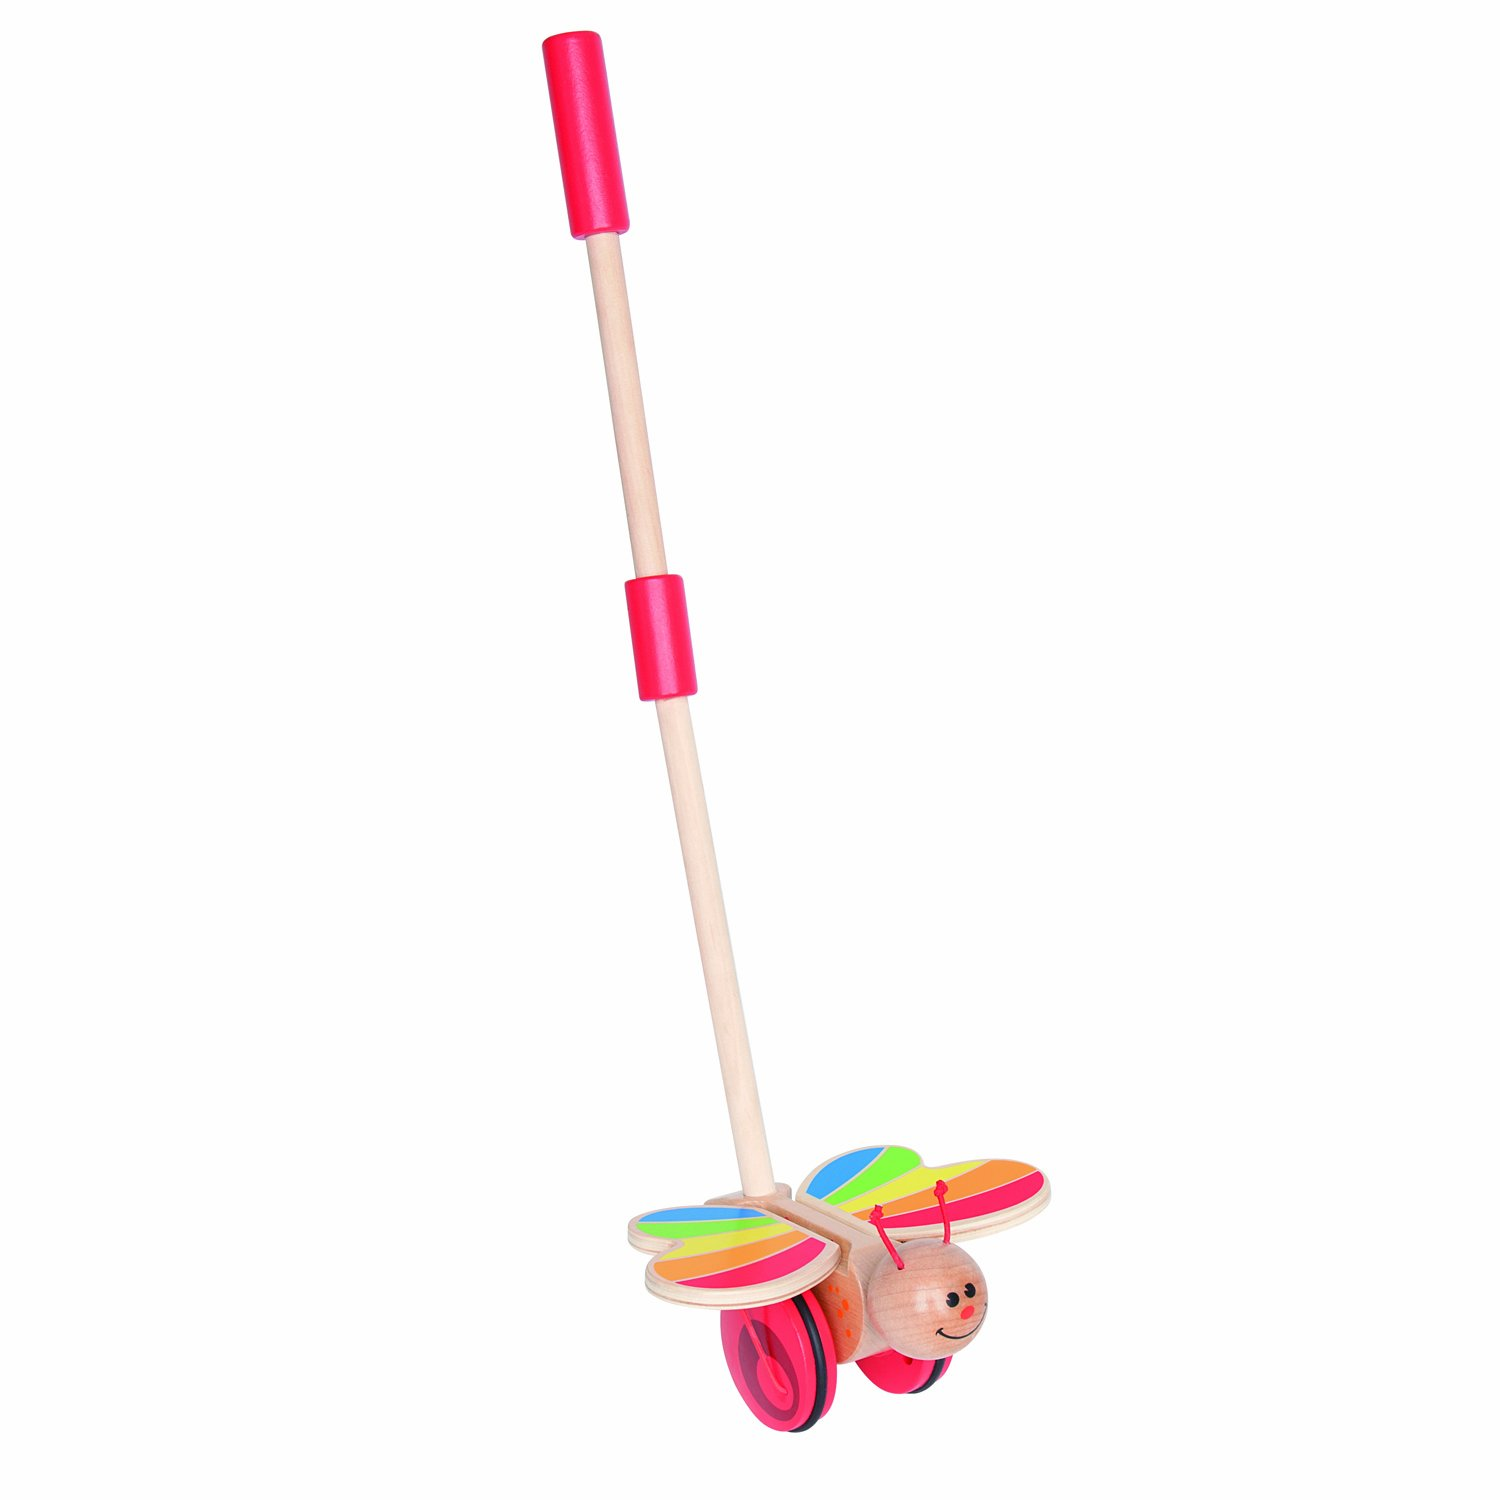 Hape Award Winning Butterfly Wooden Push and Pull Walking Toy